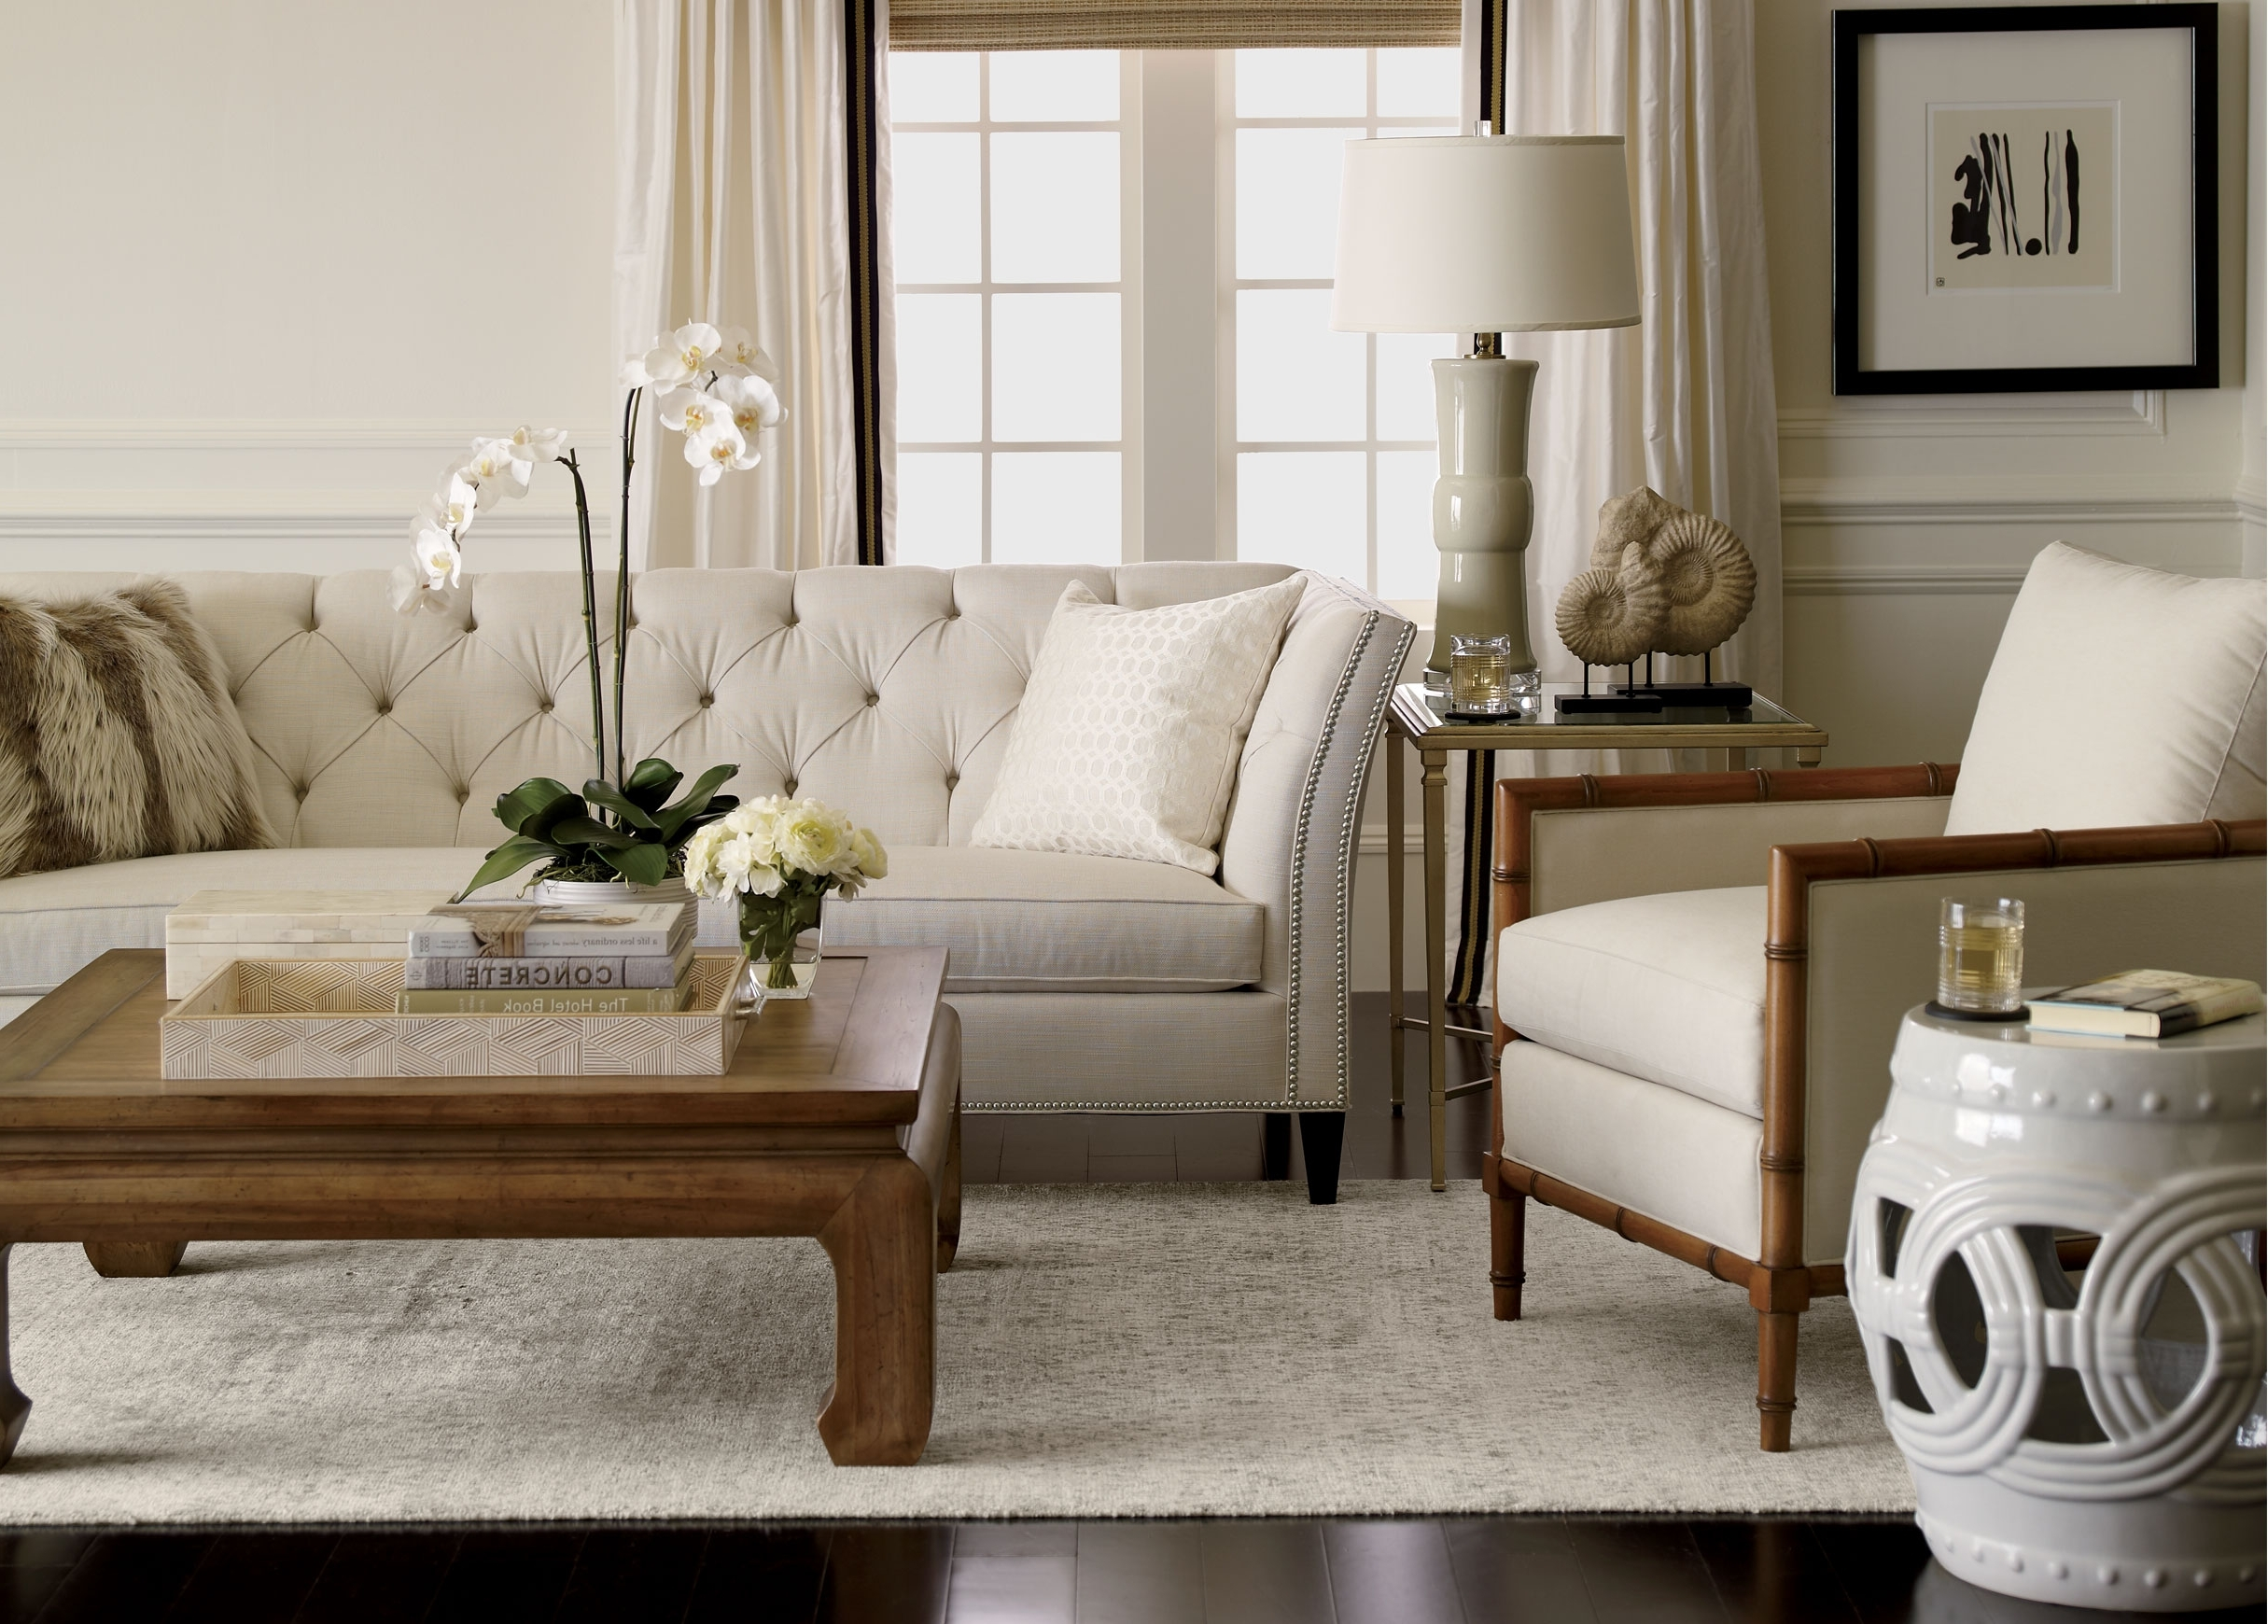 Newest Furniture: Beautiful Tufted Modern White Ethan Allen Sectional For Ethan Allen Sofas And Chairs (View 4 of 20)